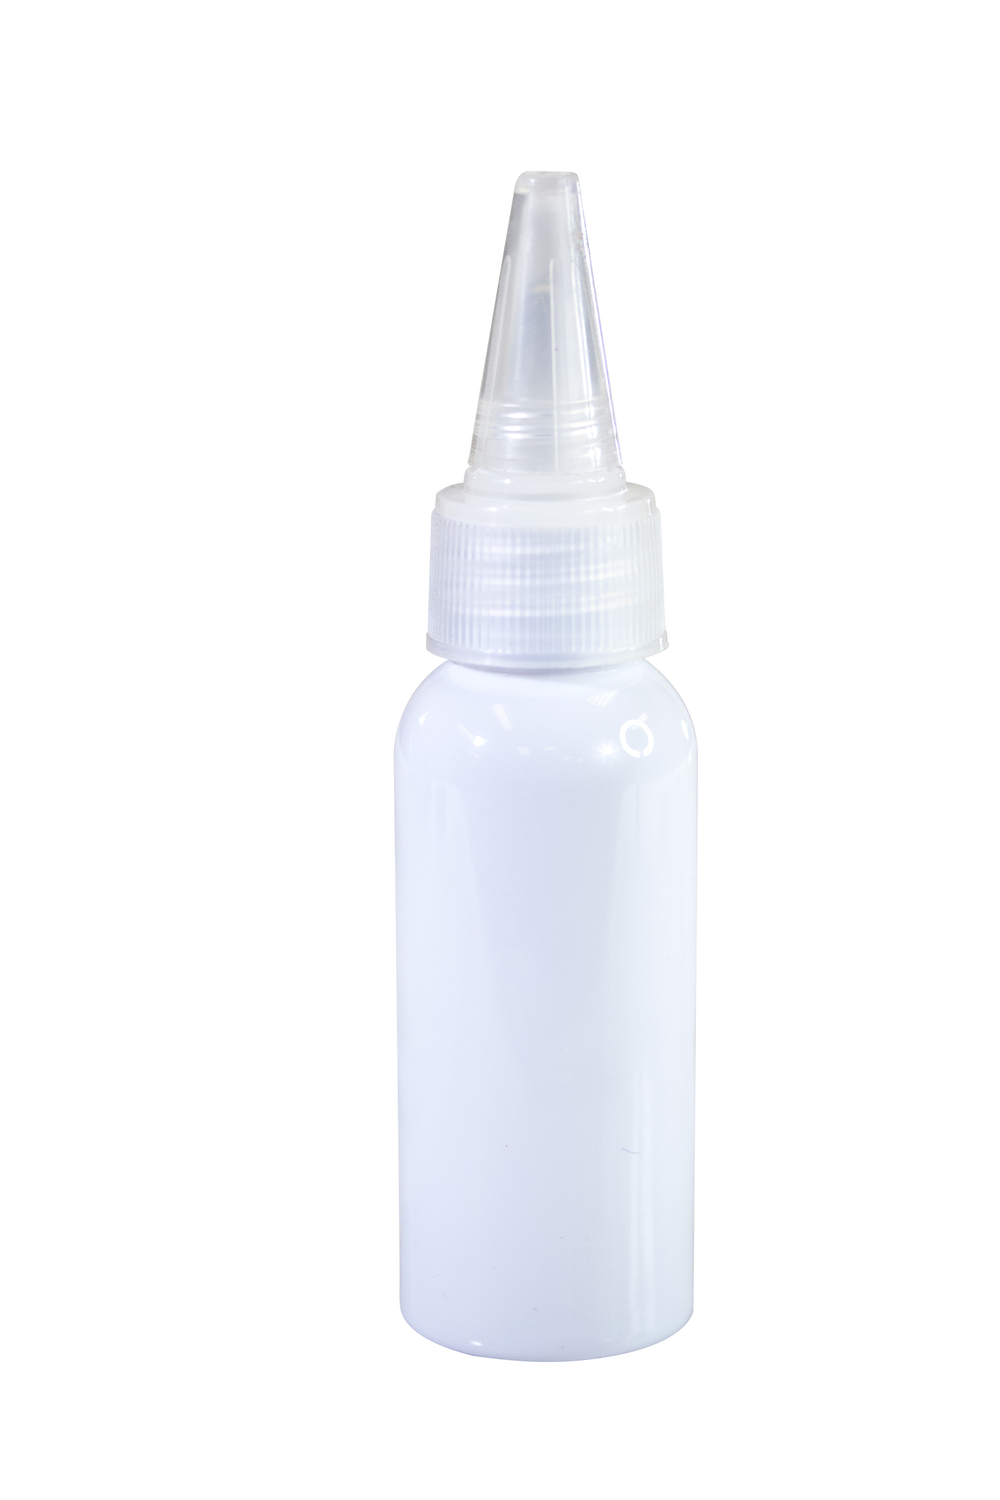 miniMr. refill bottle